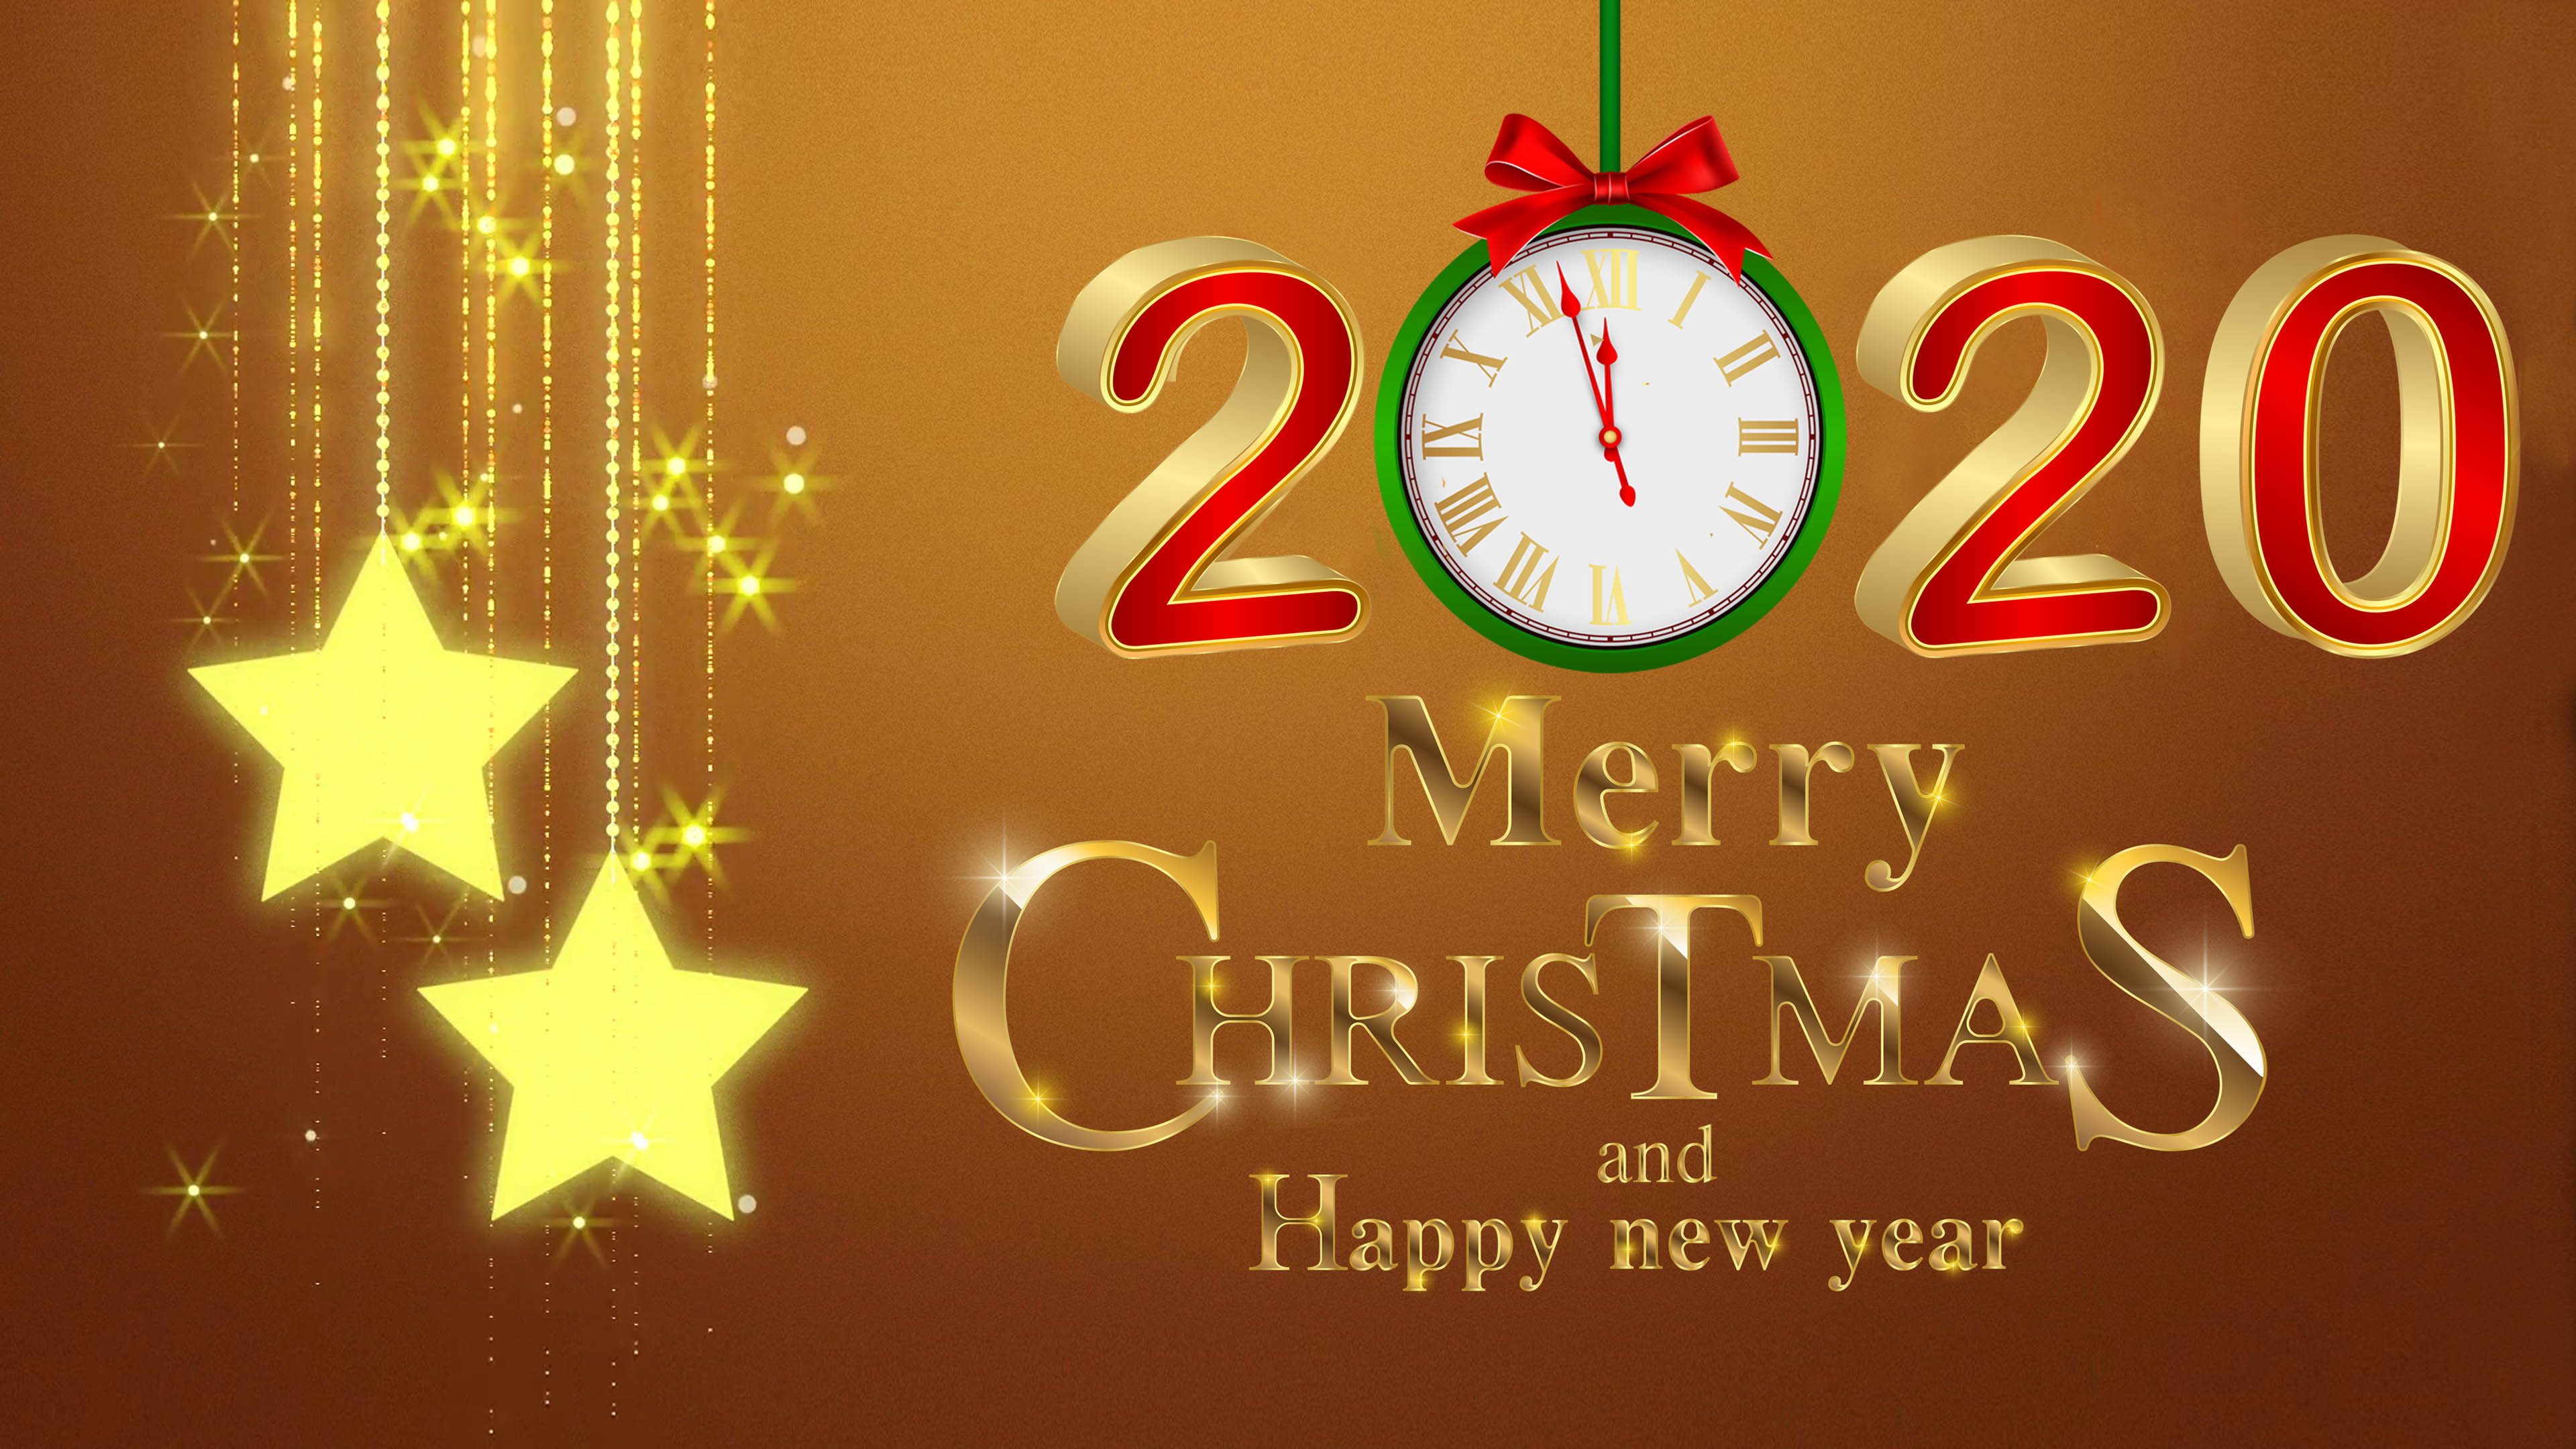 24] Merry Christmas Happy 2020 Wallpapers on WallpaperSafari 3840x2160